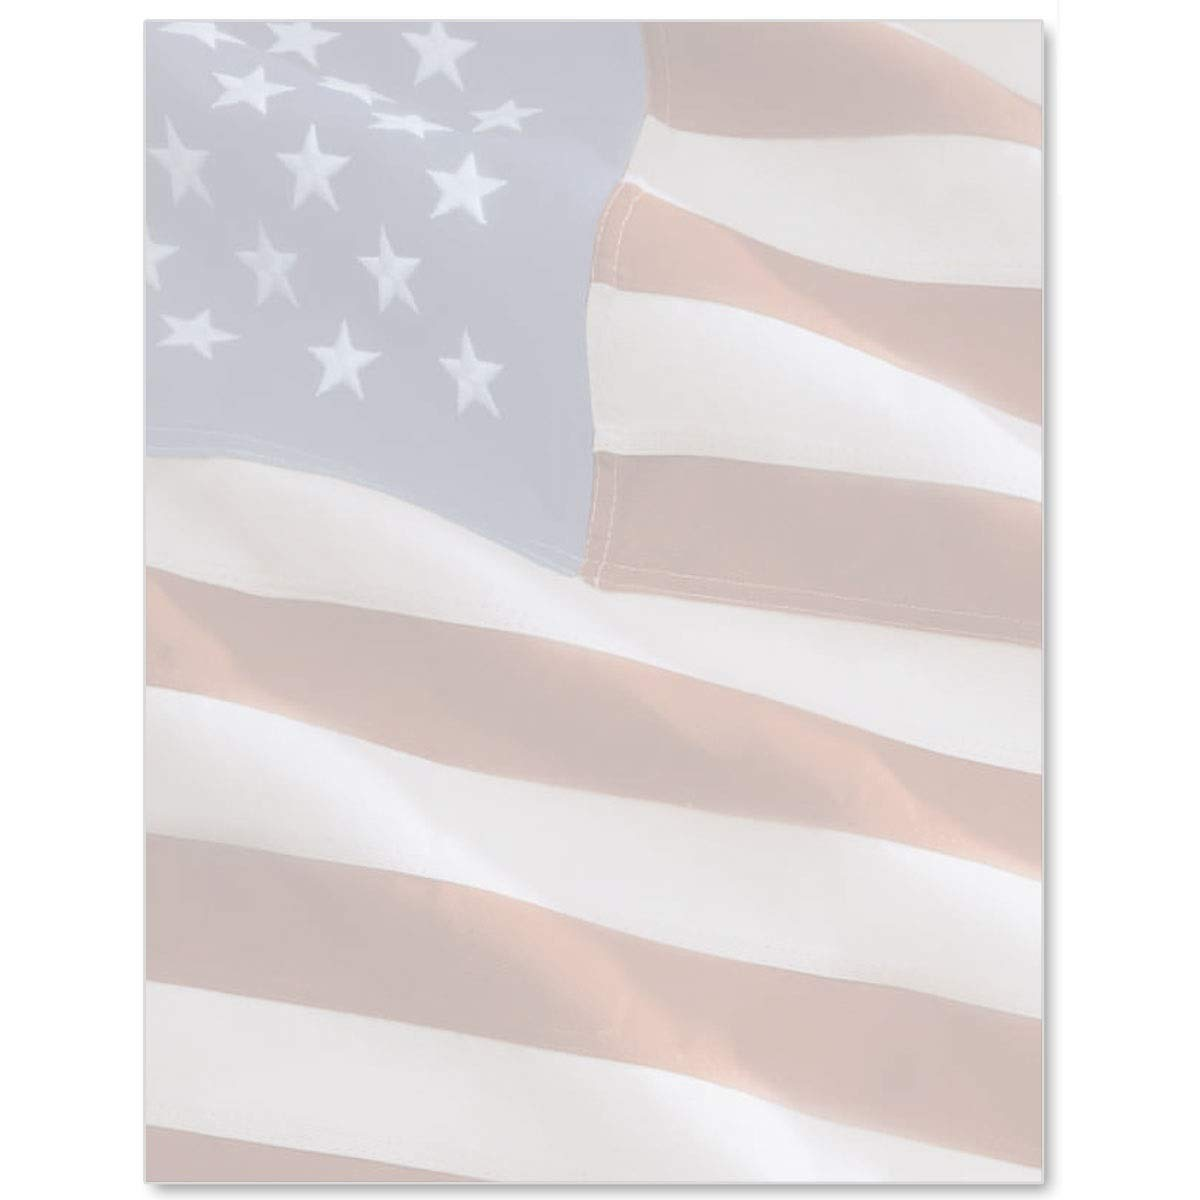 American Standard Patriotic Flag Letter Paper, 8.5 x 11 inches, 100 Count, 24lb Stock Paper, Laser and Inkjet Compatible